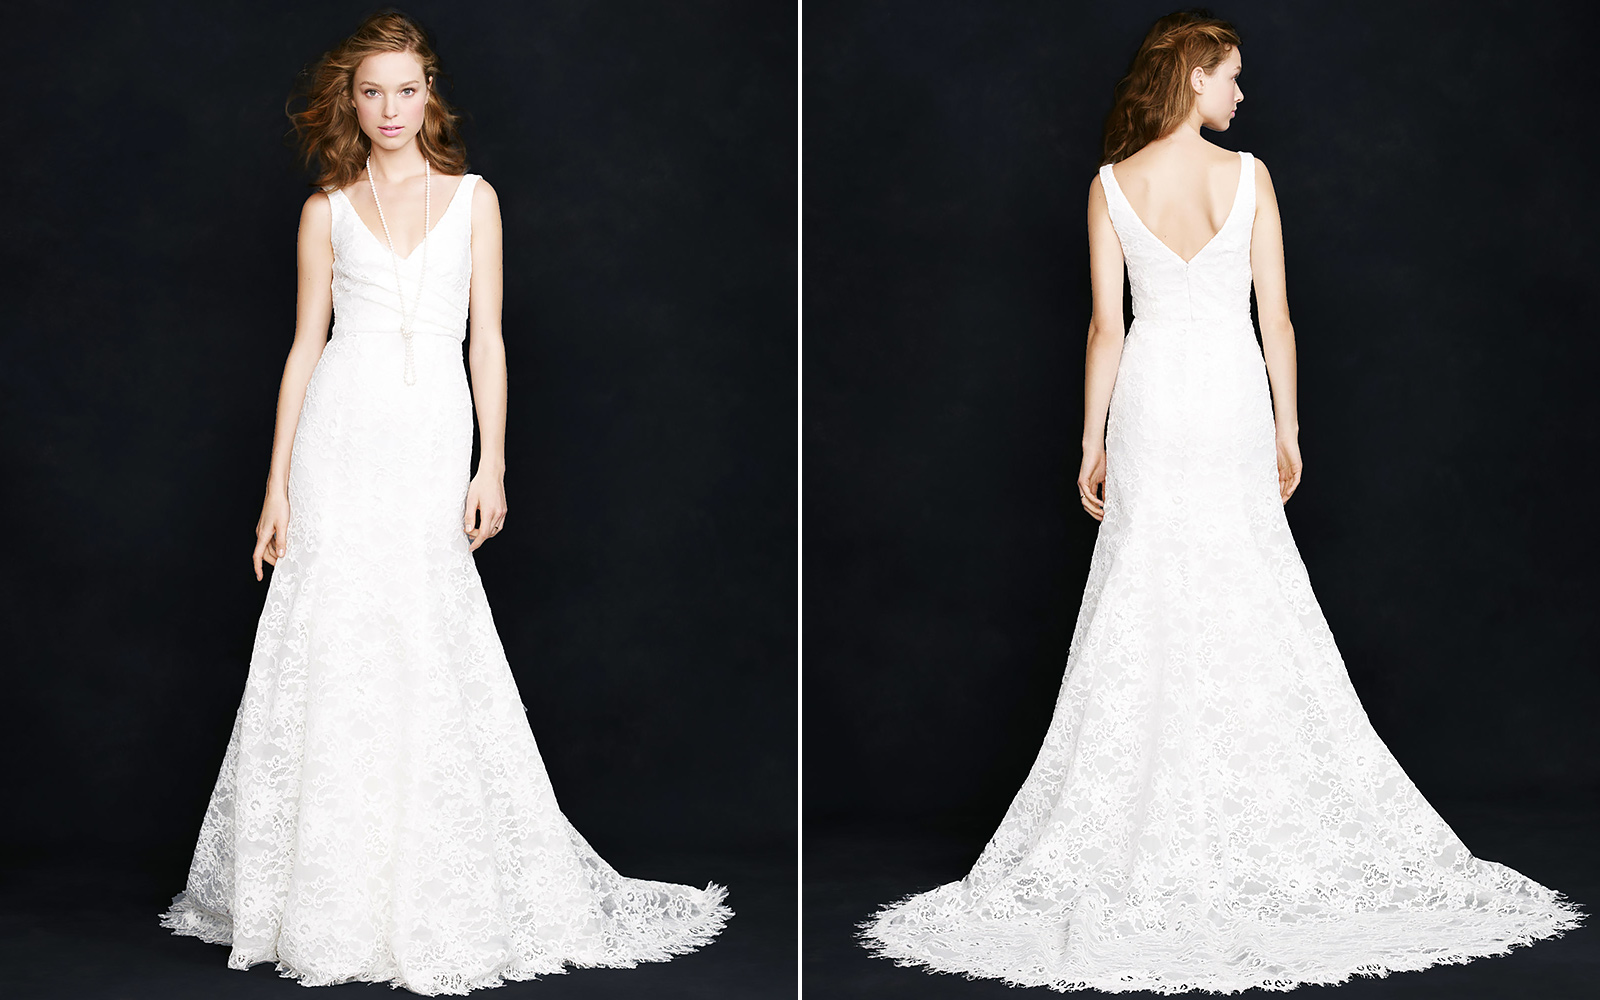 J.Crew Sara Lace Gown, $1,700 on sale from $2,200.